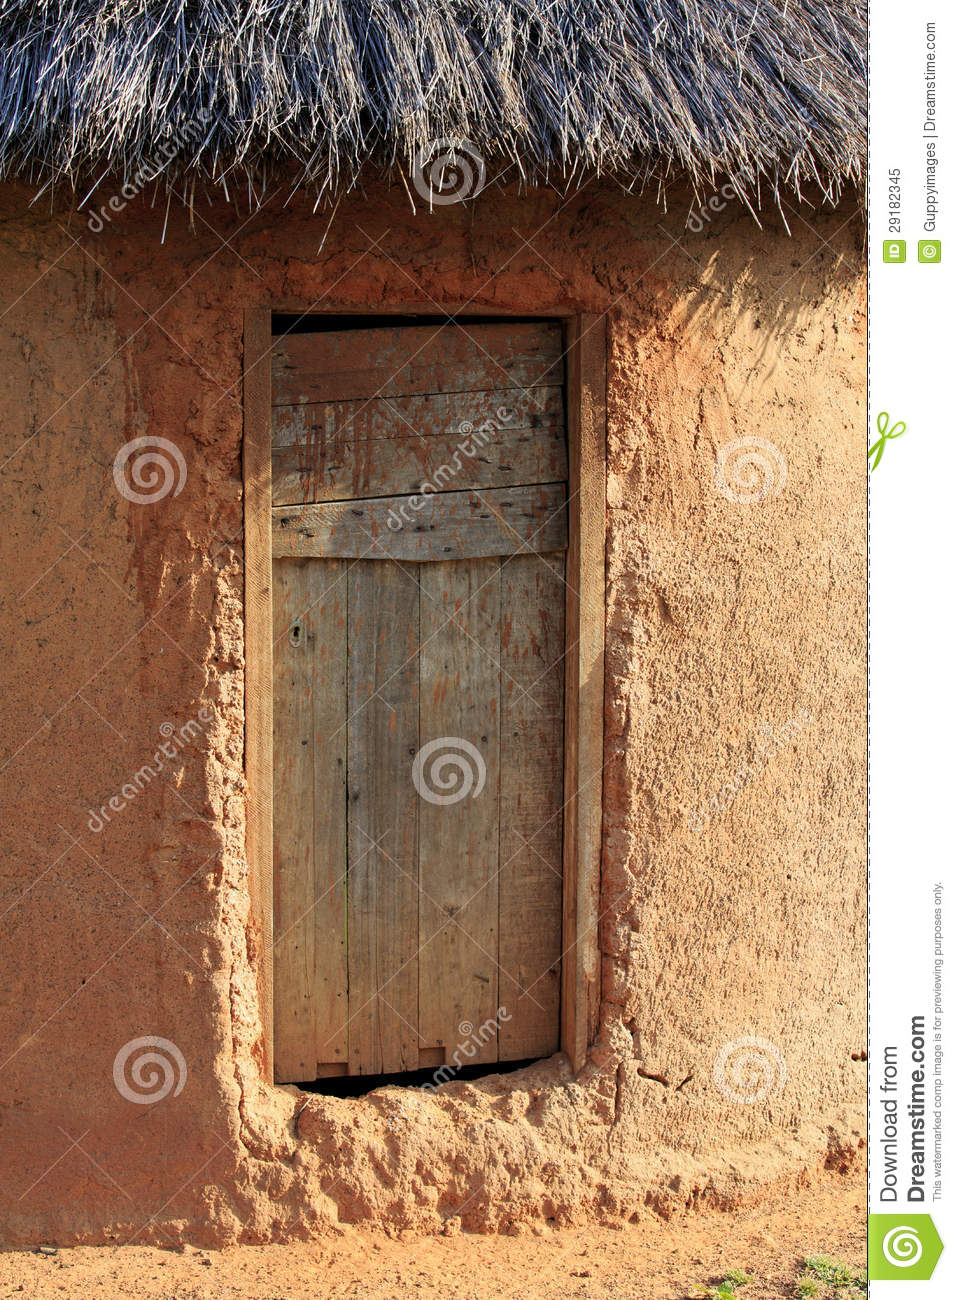 Mud Hut Wooden Door Royalty Free Stock Photo Image 29182345